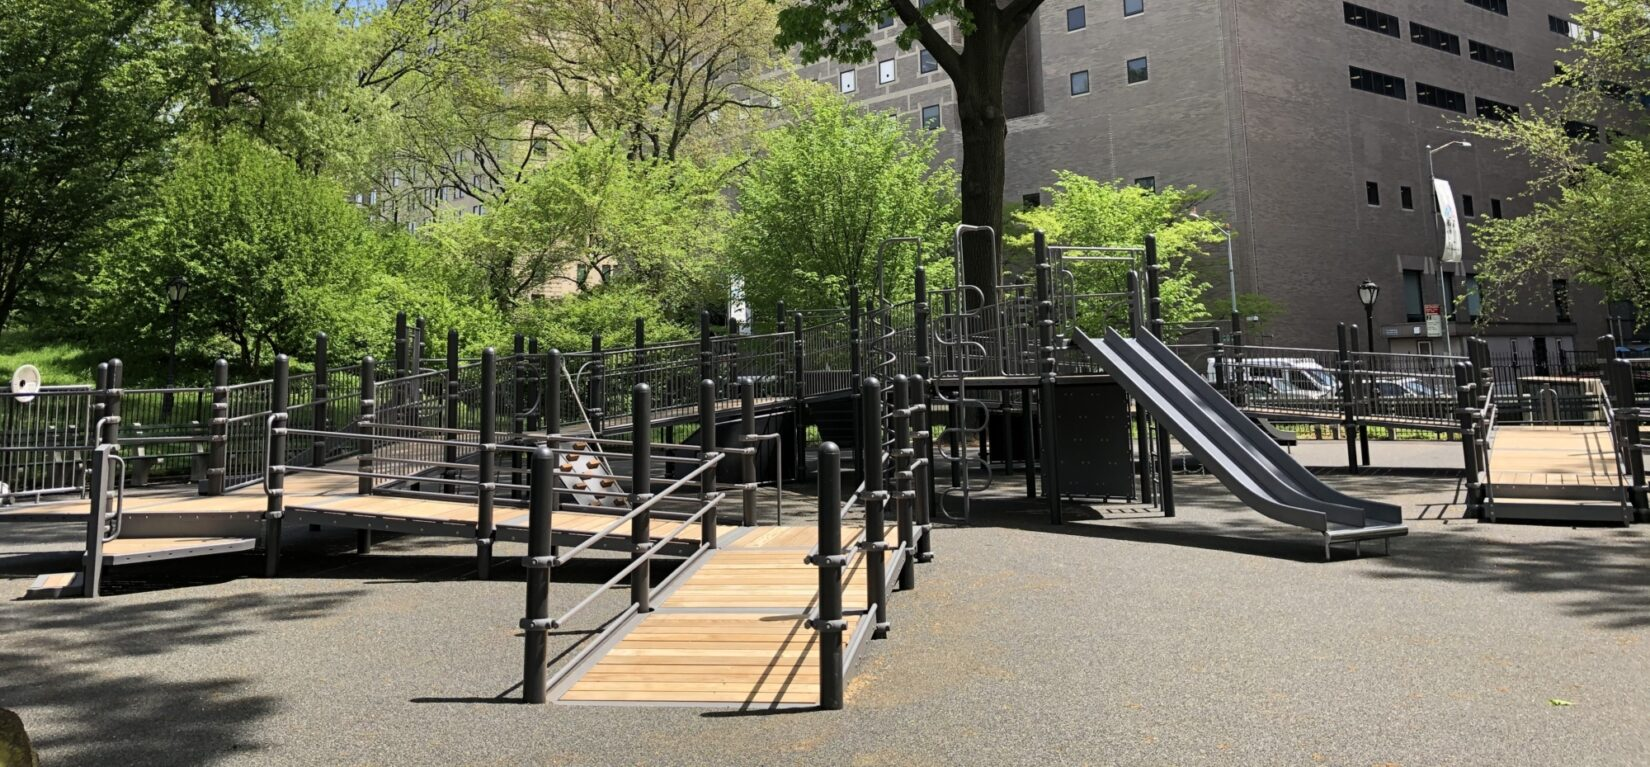 The playground is seen with apartment buildings in the background, showing how available it is to the community.